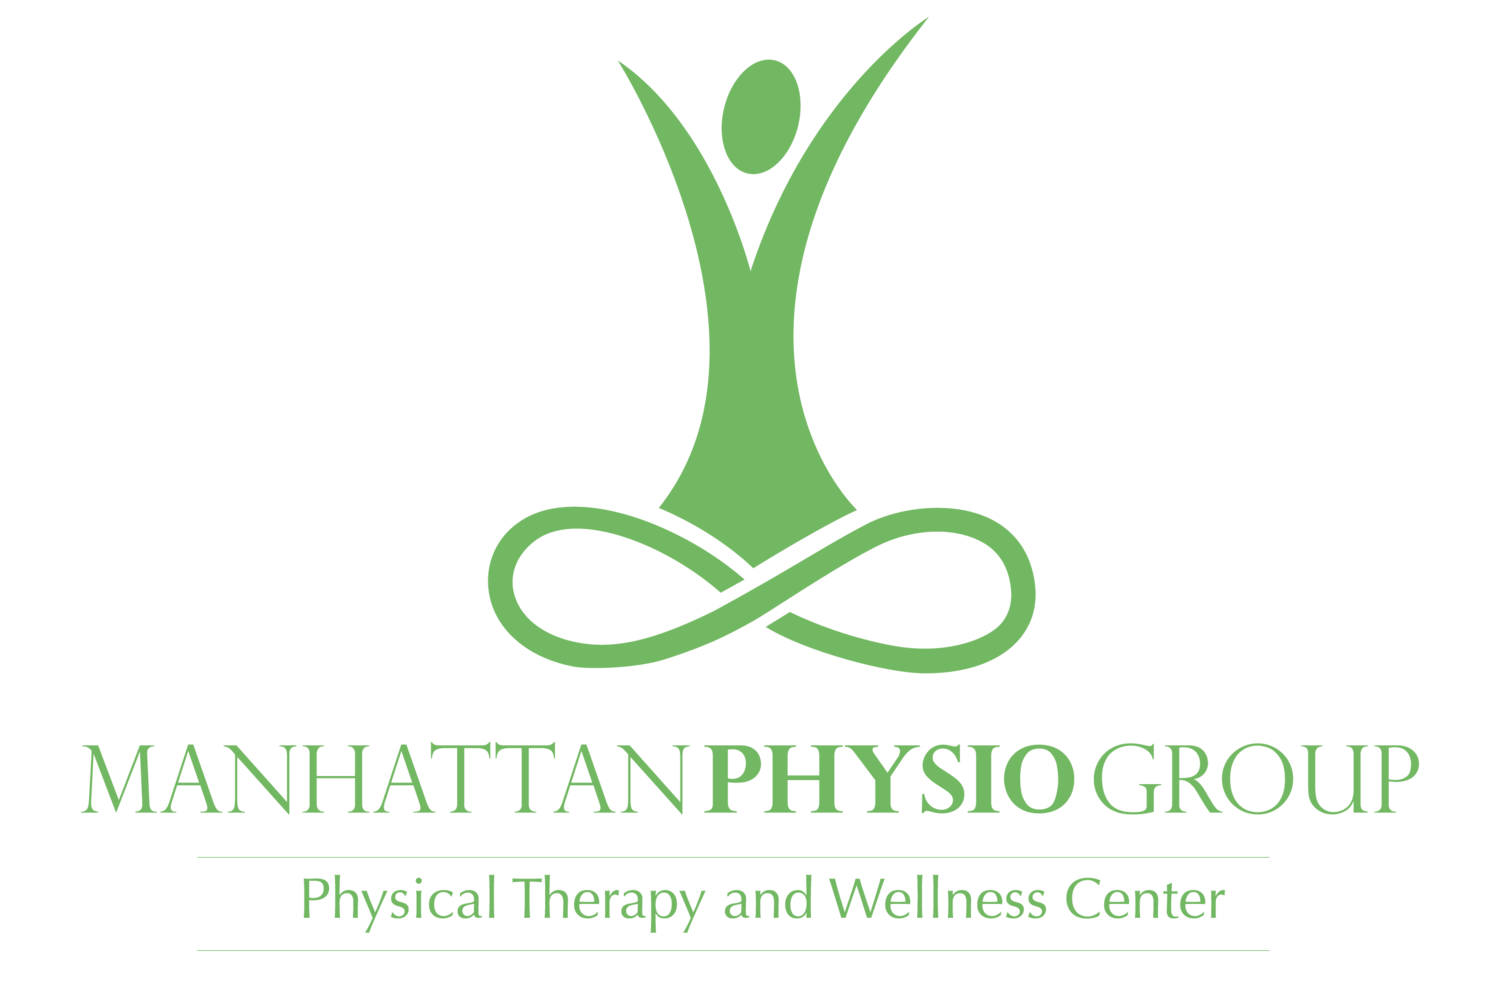 Manhattan Physio Group